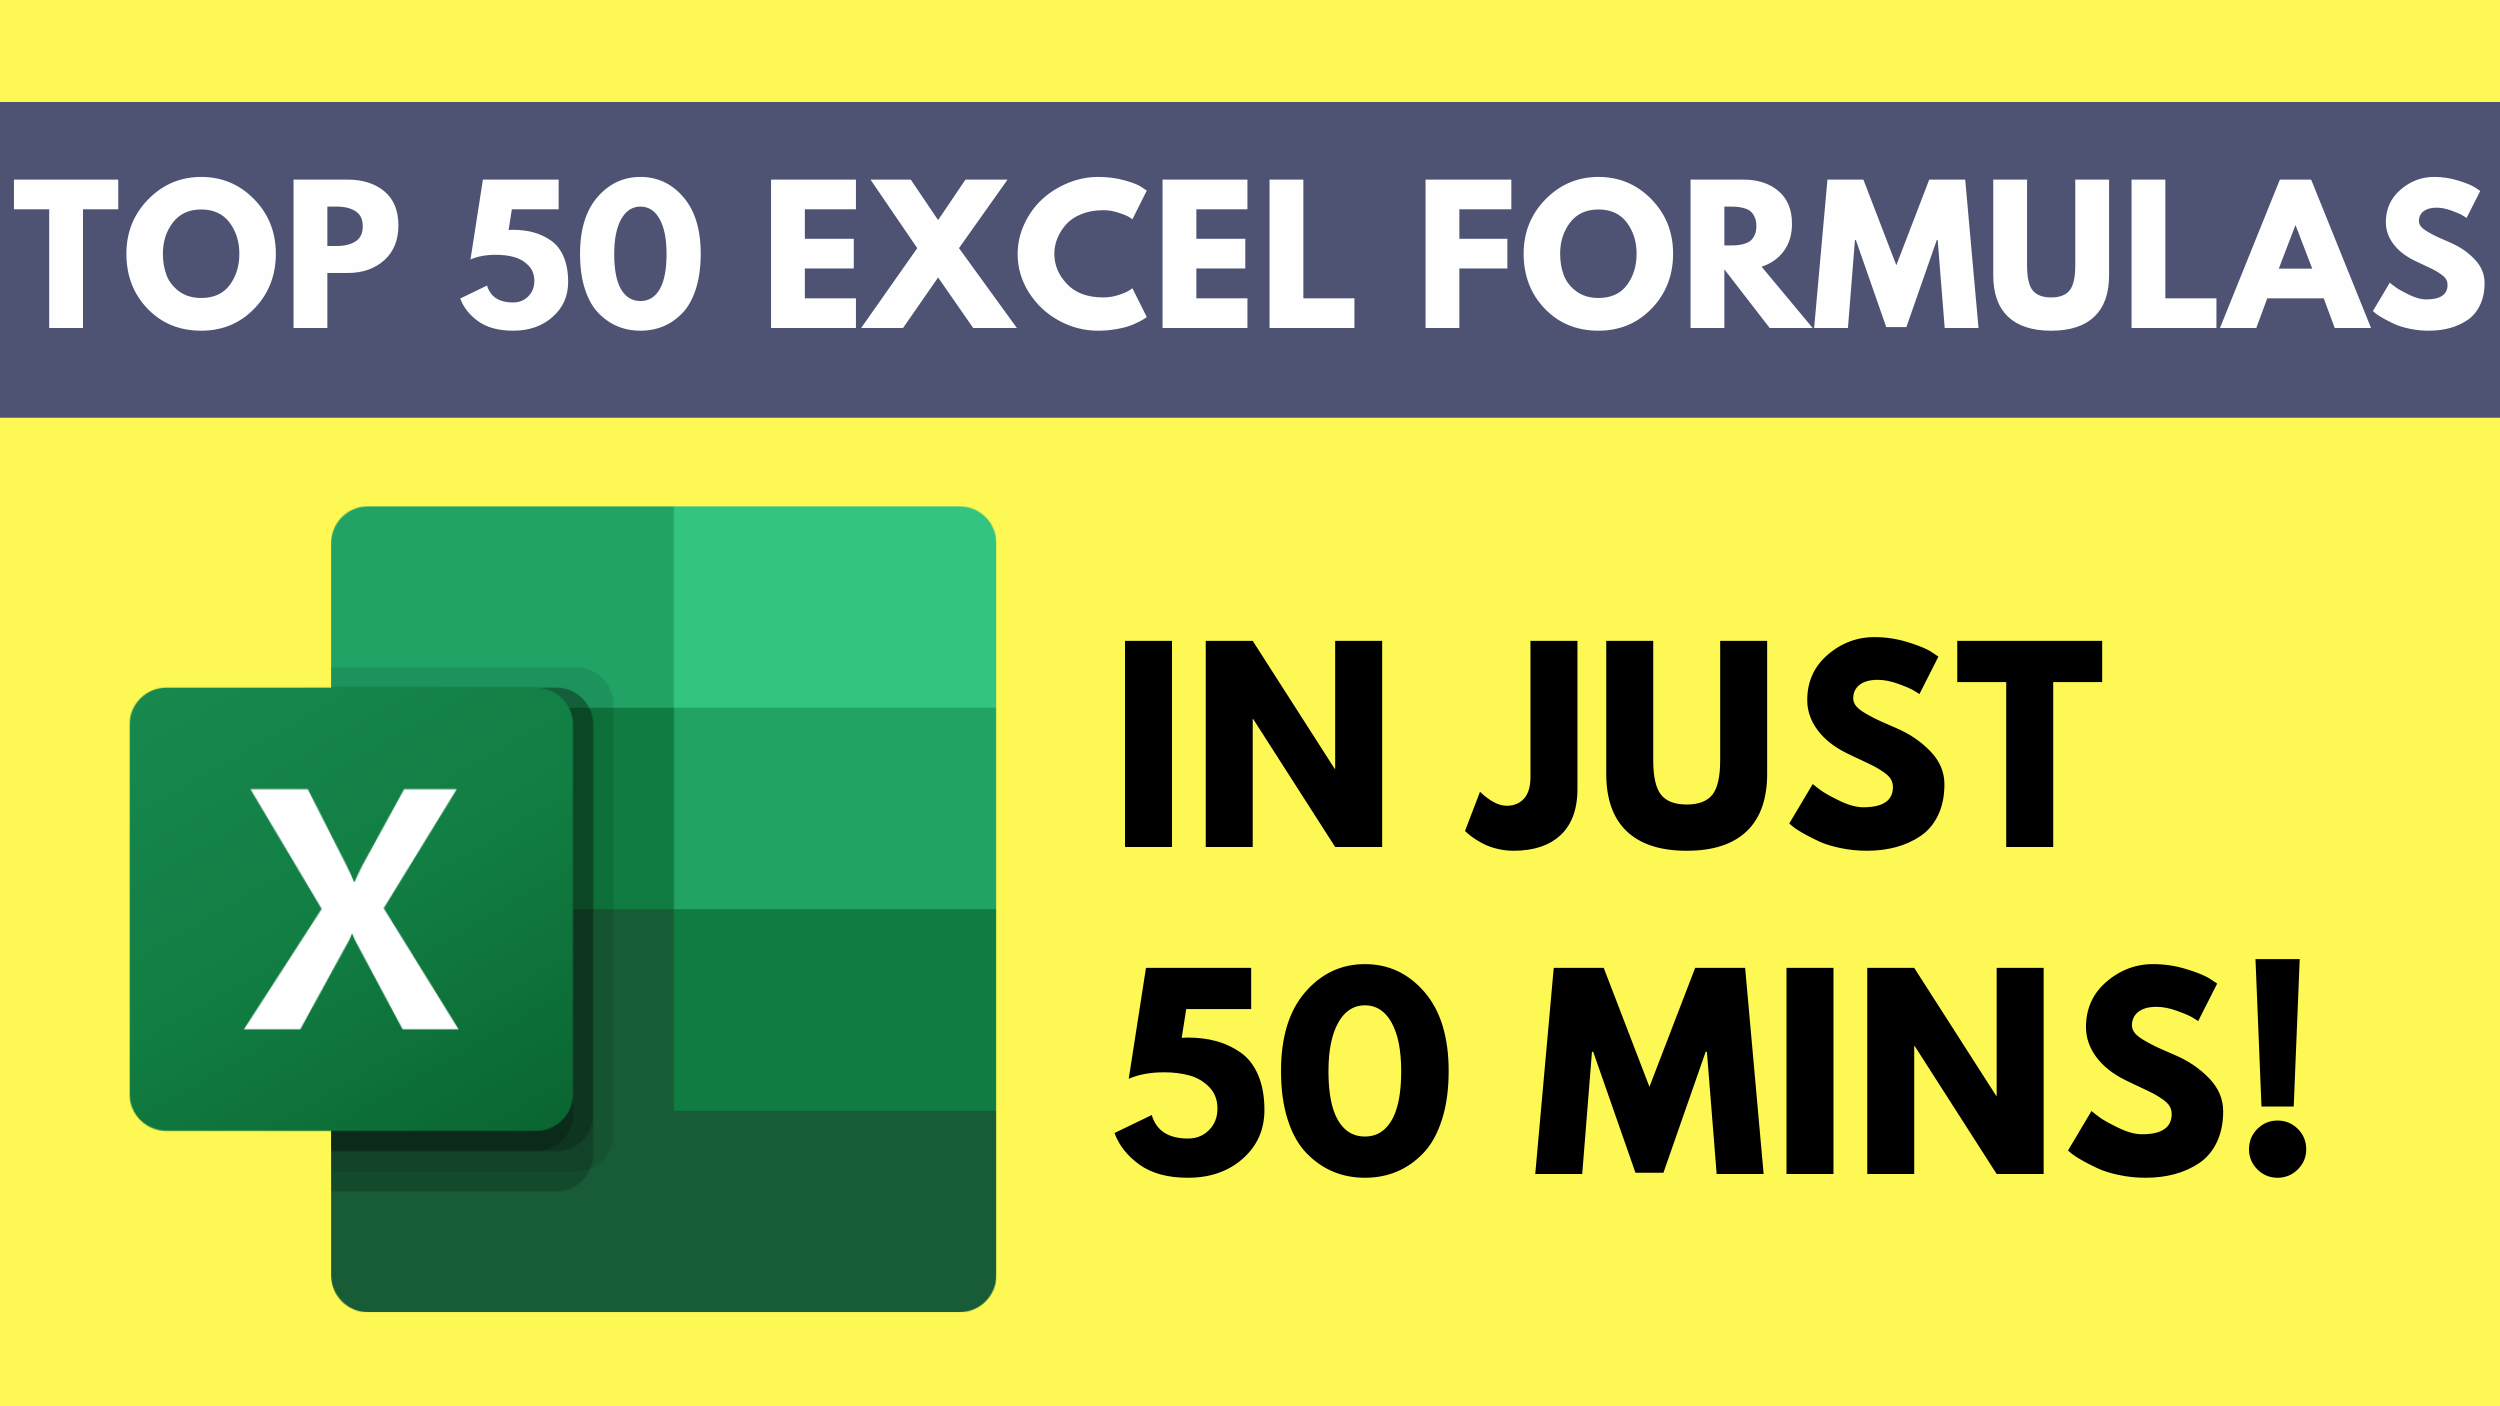 Master the Top 20 Excel Formulas and understand the essence of each fo